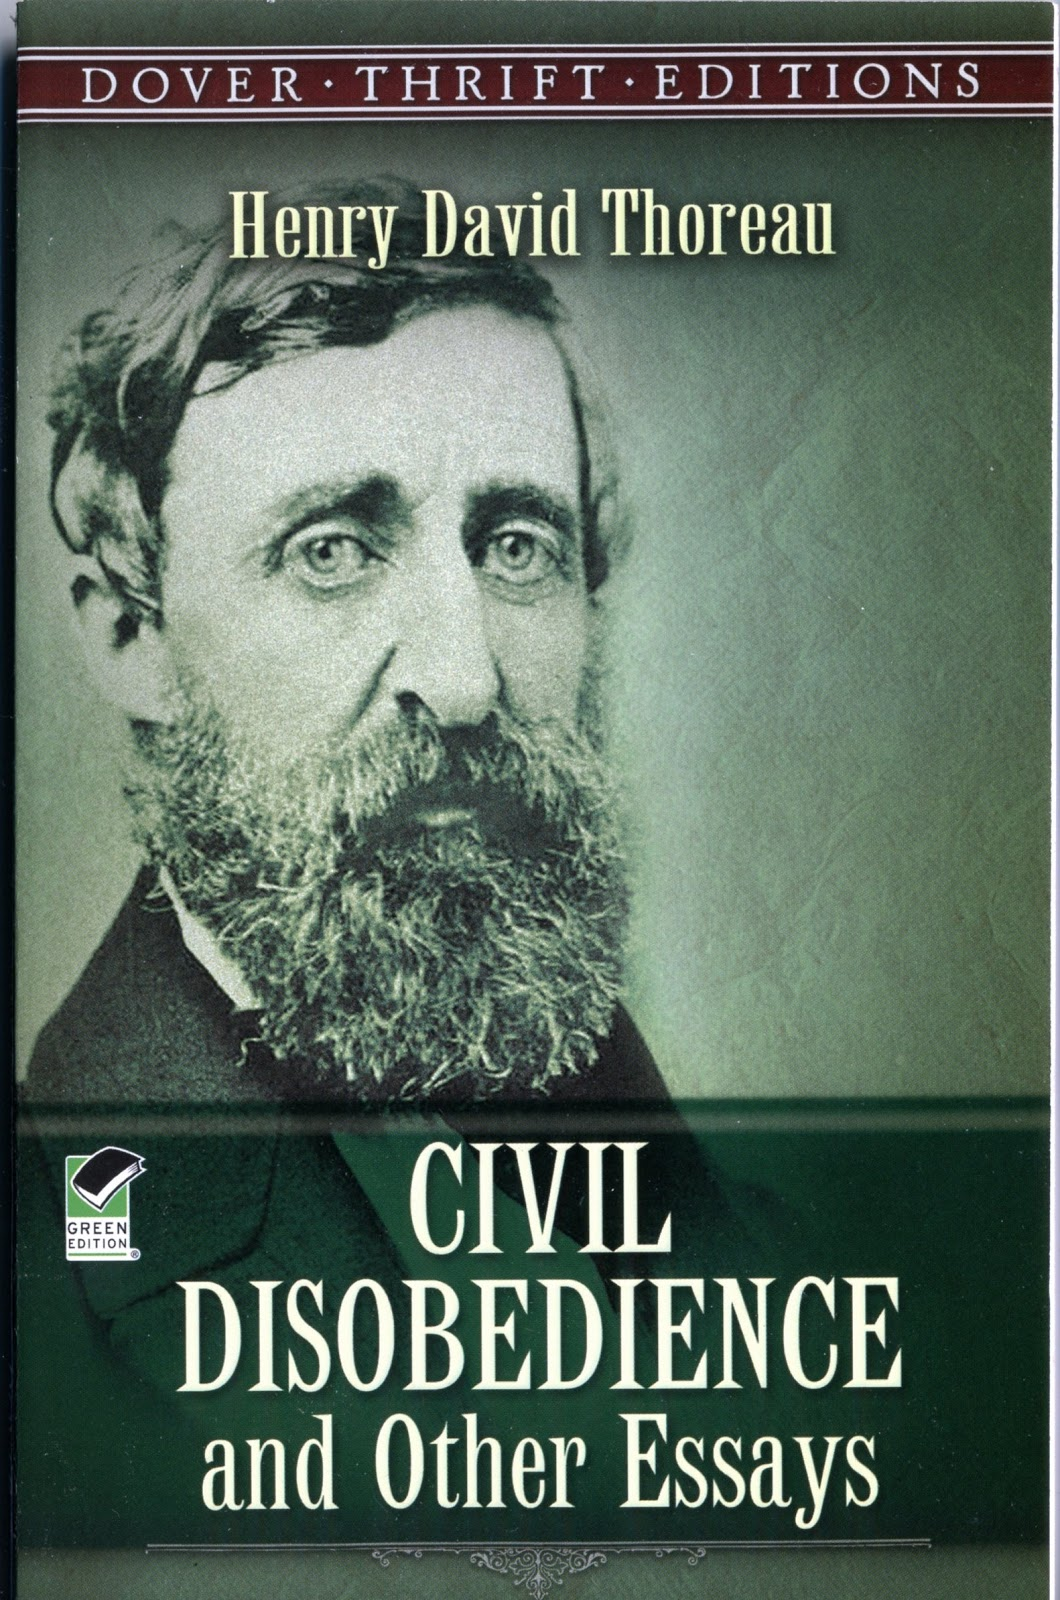 henry david thoreau civil disobedience quotes quotesgram advertisement